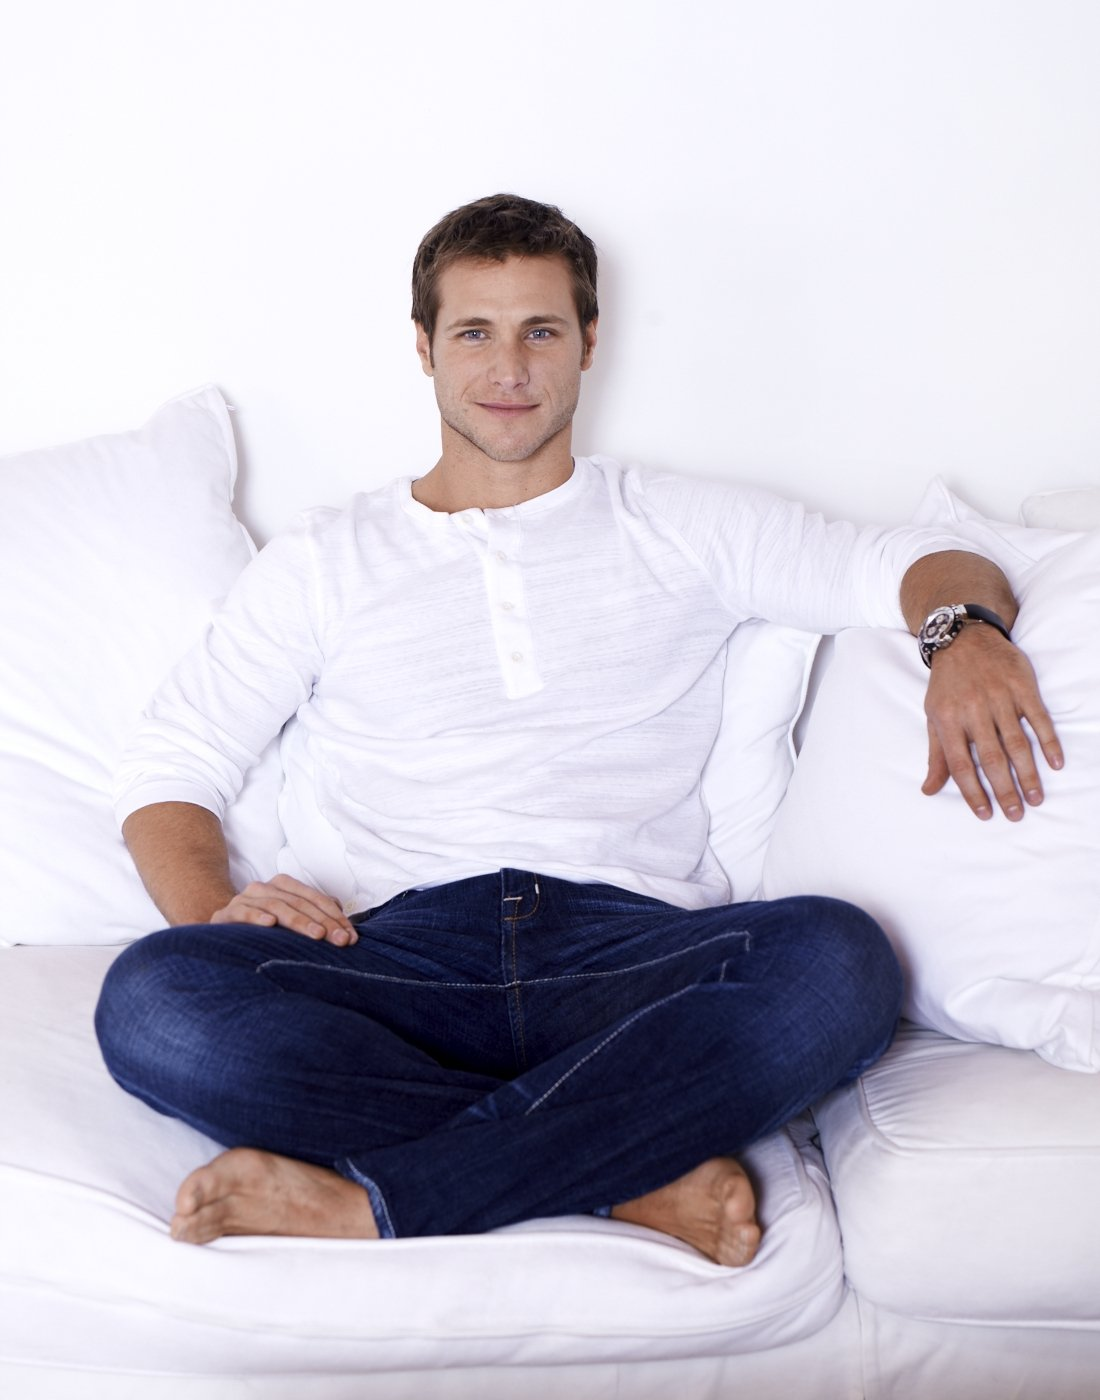 Andy roddick who is he dating 5